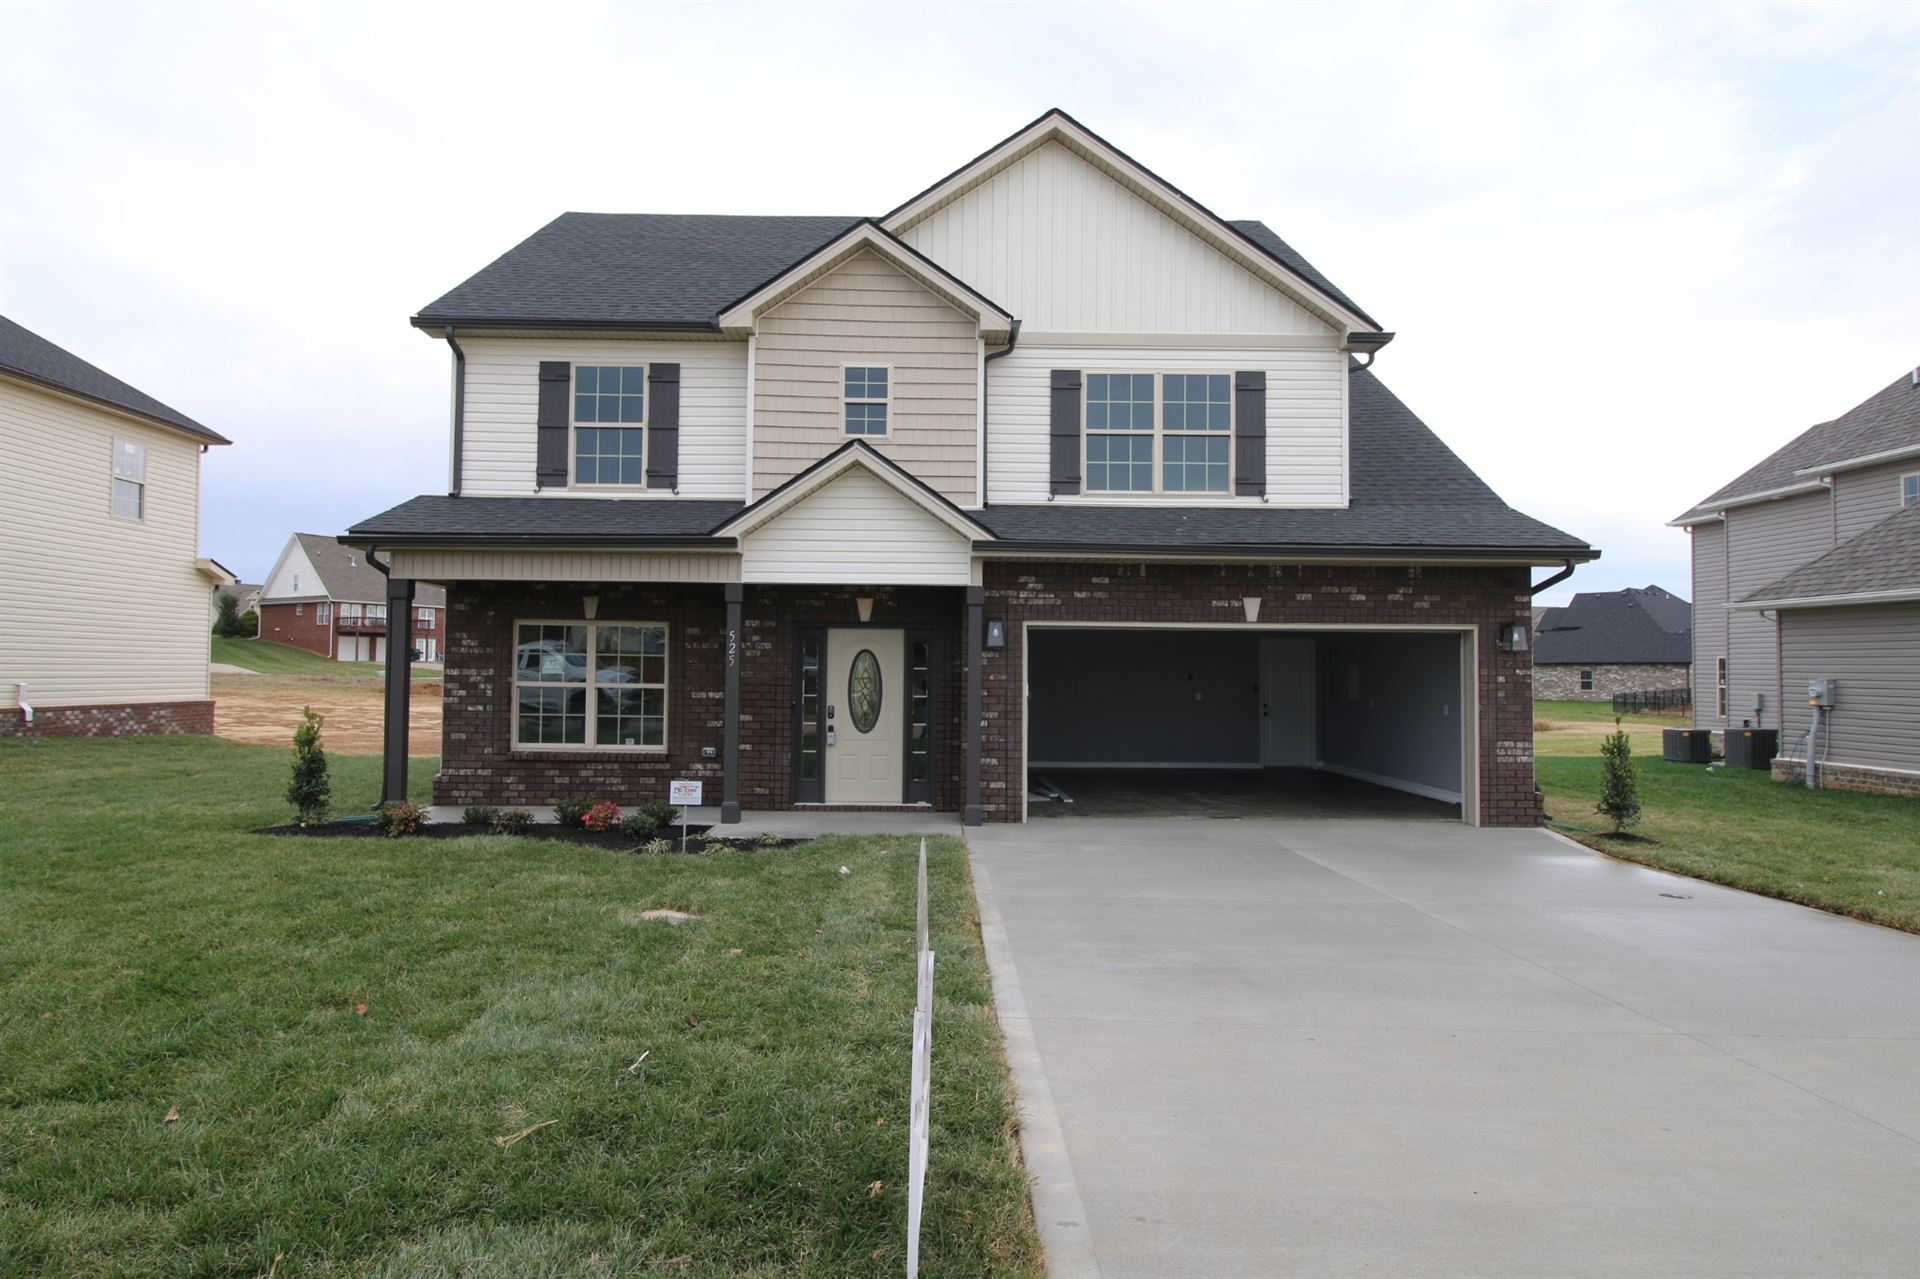 95 Reserve at Hickory Wild, Clarksville, TN 37043 - MLS#: 2182122